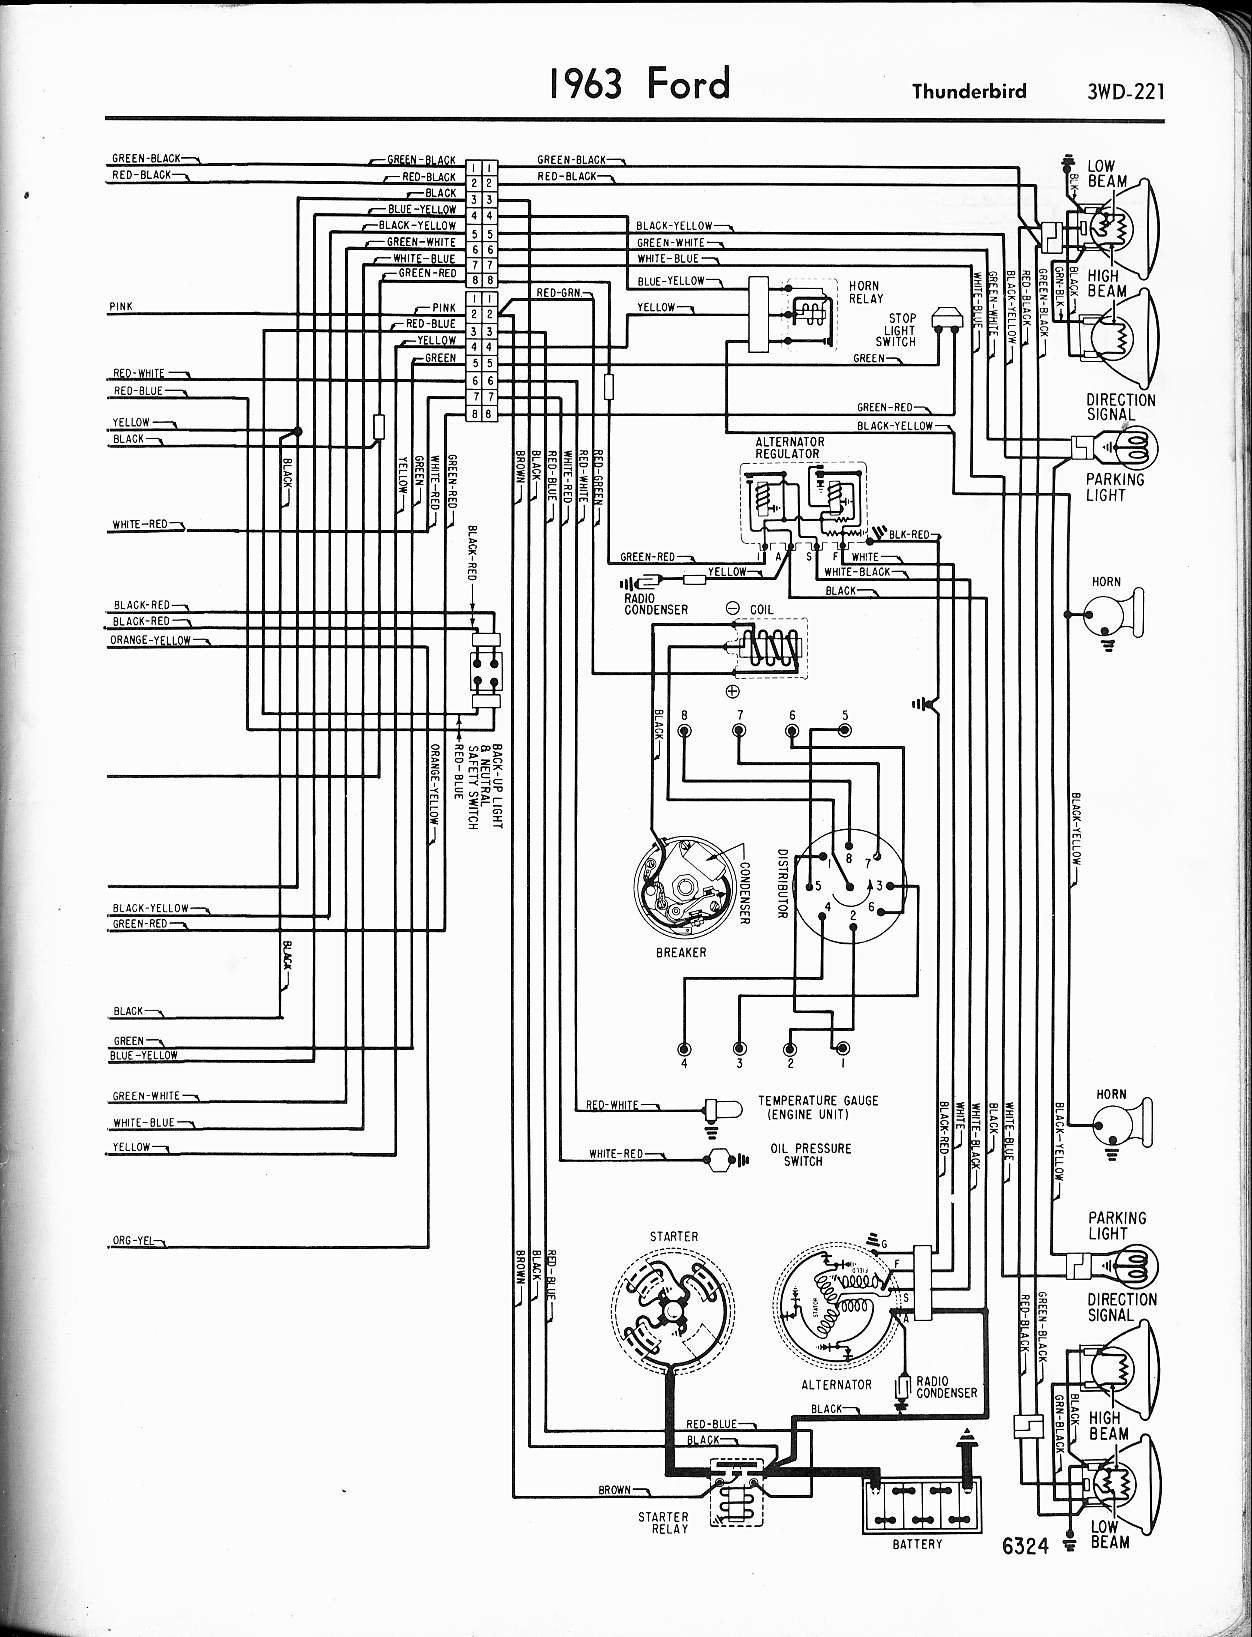 [DIAGRAM_38IS]  NF_7270] Wiring Schematic For 1963 Ford F 100 | 1966 Ford Falcon Ranchero Wiring Diagram |  | Inki Emba Joni Gray Cajos Mohammedshrine Librar Wiring 101